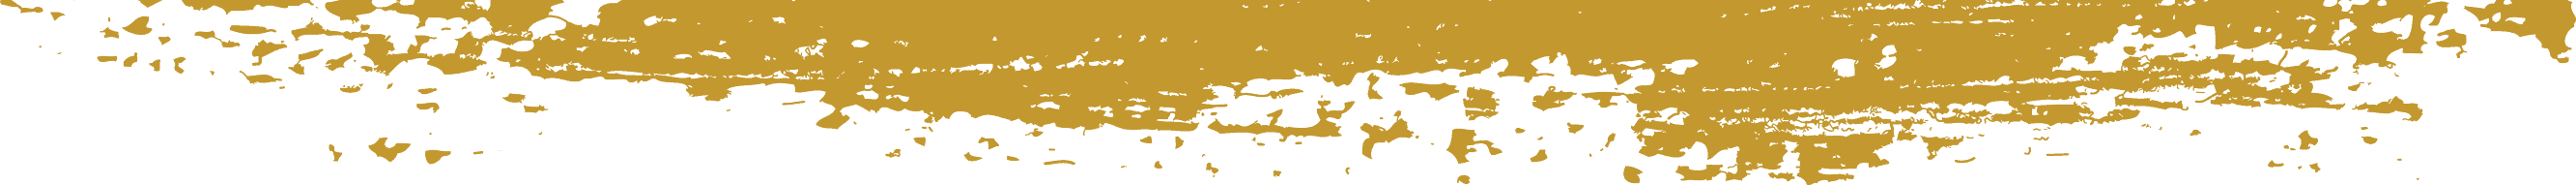 row-brush-down-darkgold-lg1